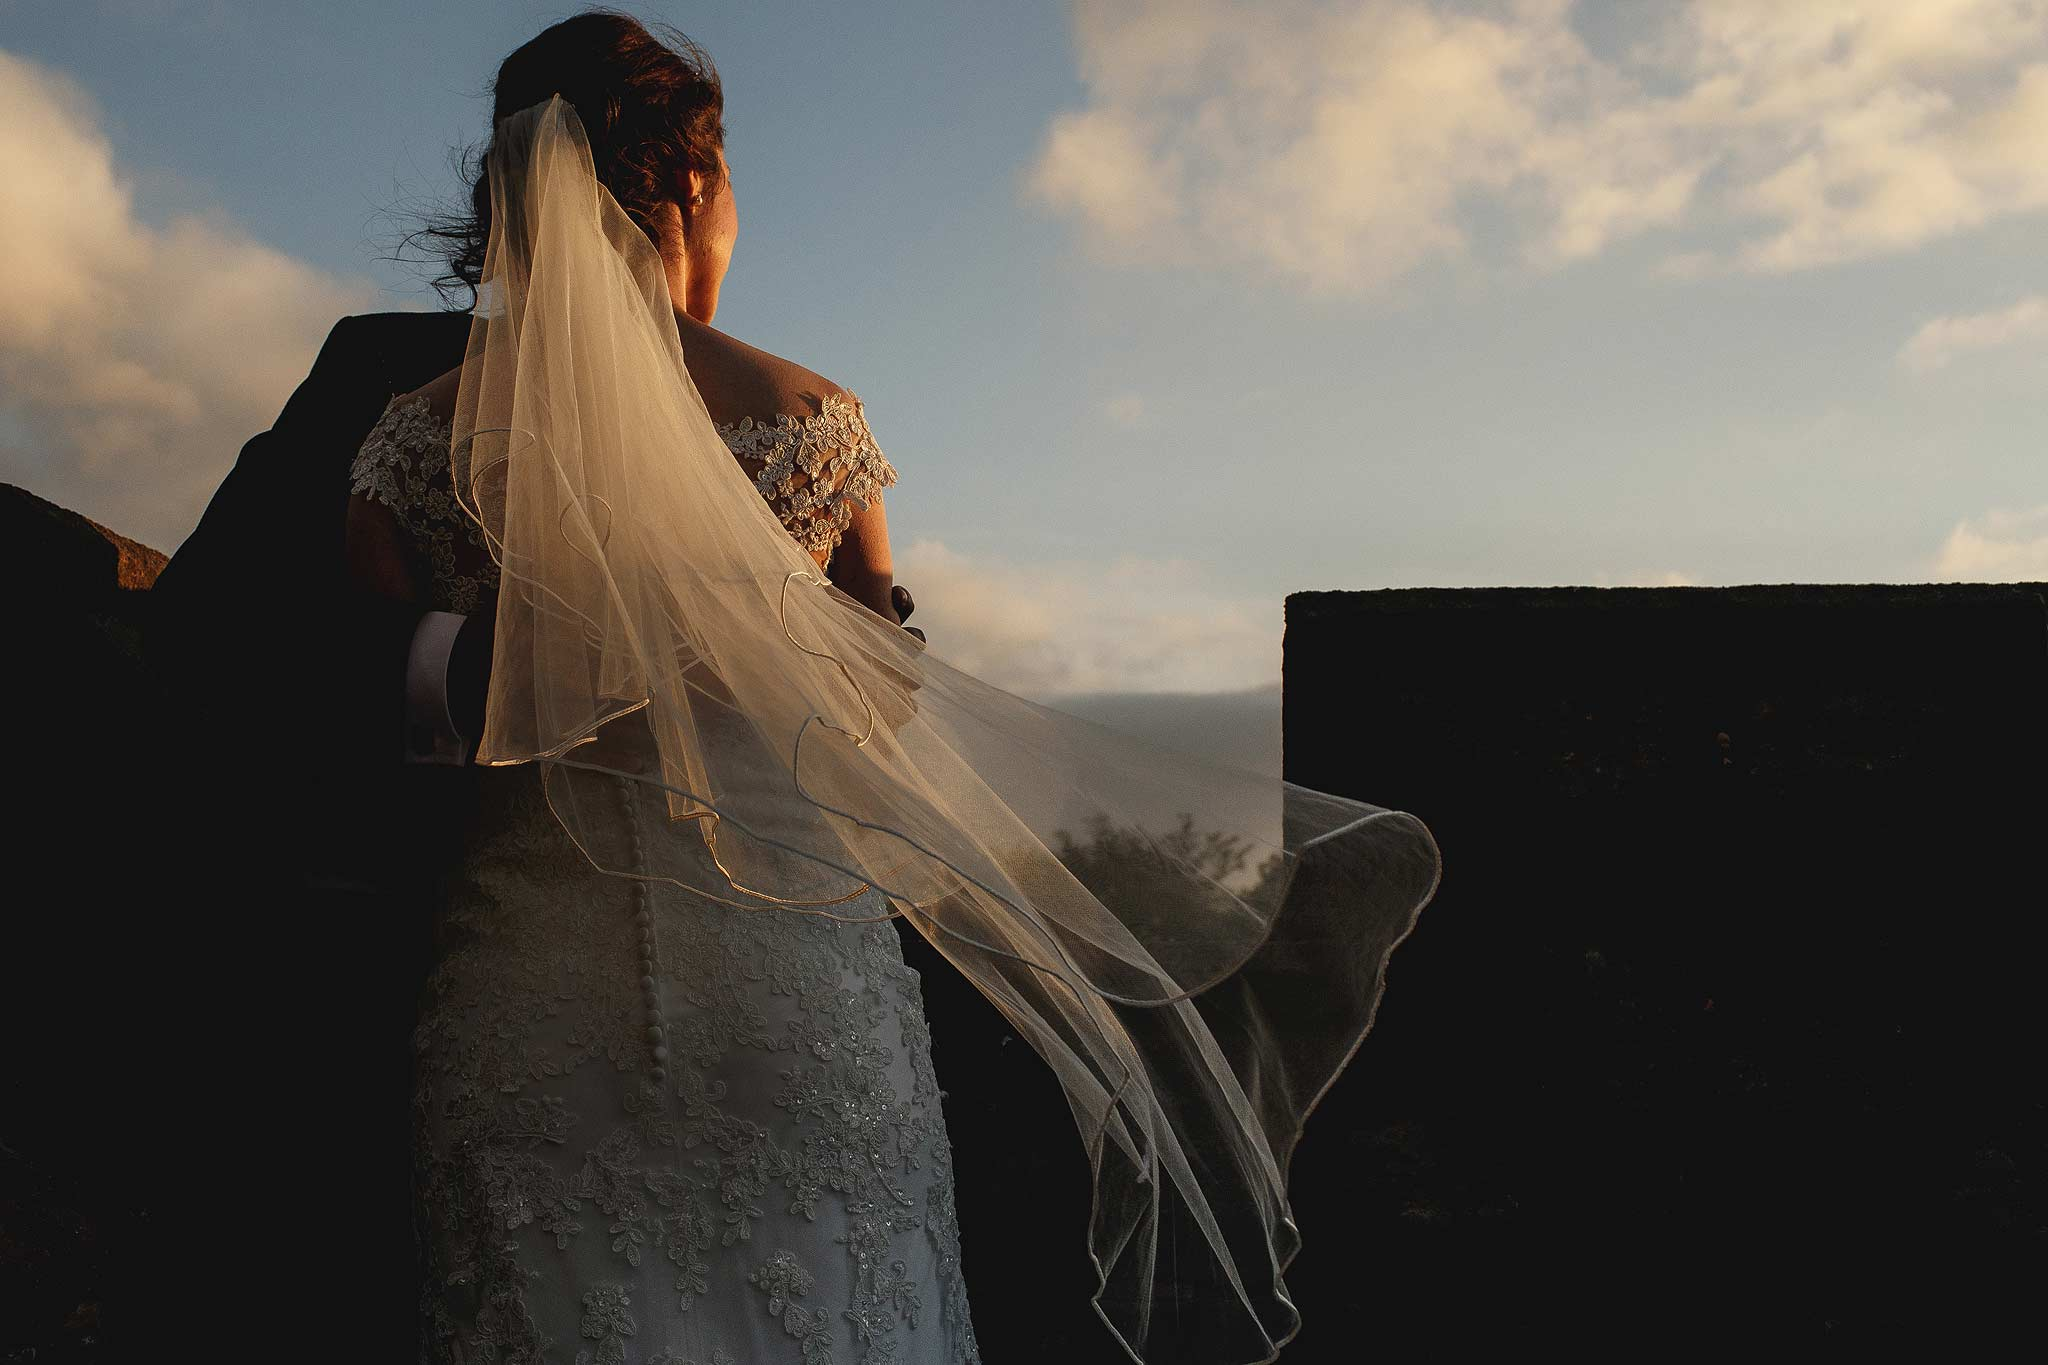 Brides veil blowing during sunset at Hoghton Tower Wedding